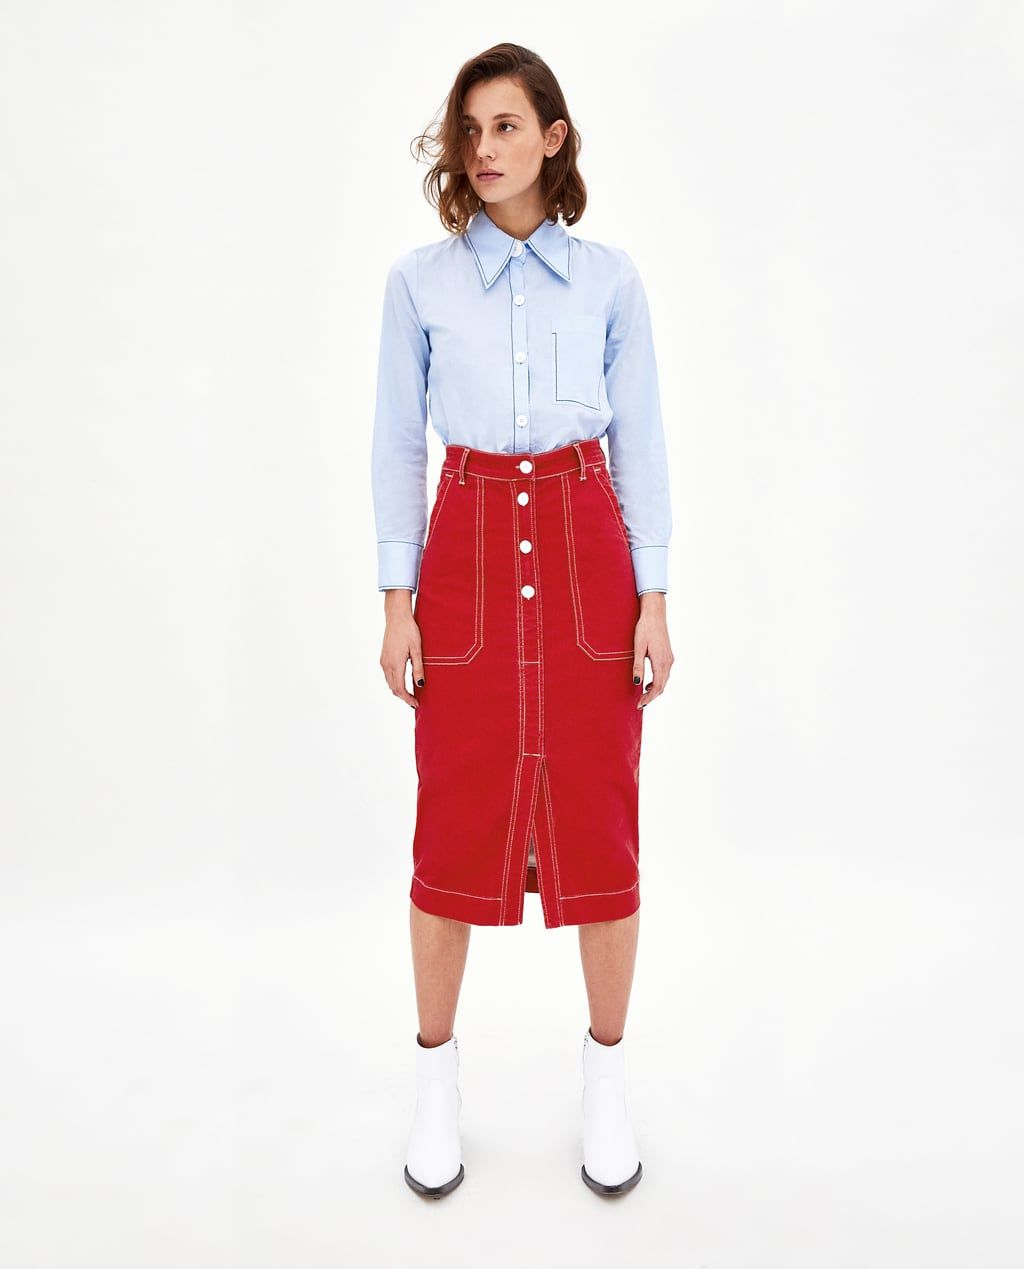 6bb83ec0 FALDA PESPUNTES CONTRASTADOS | That's So Fashion | Zara skirts ...